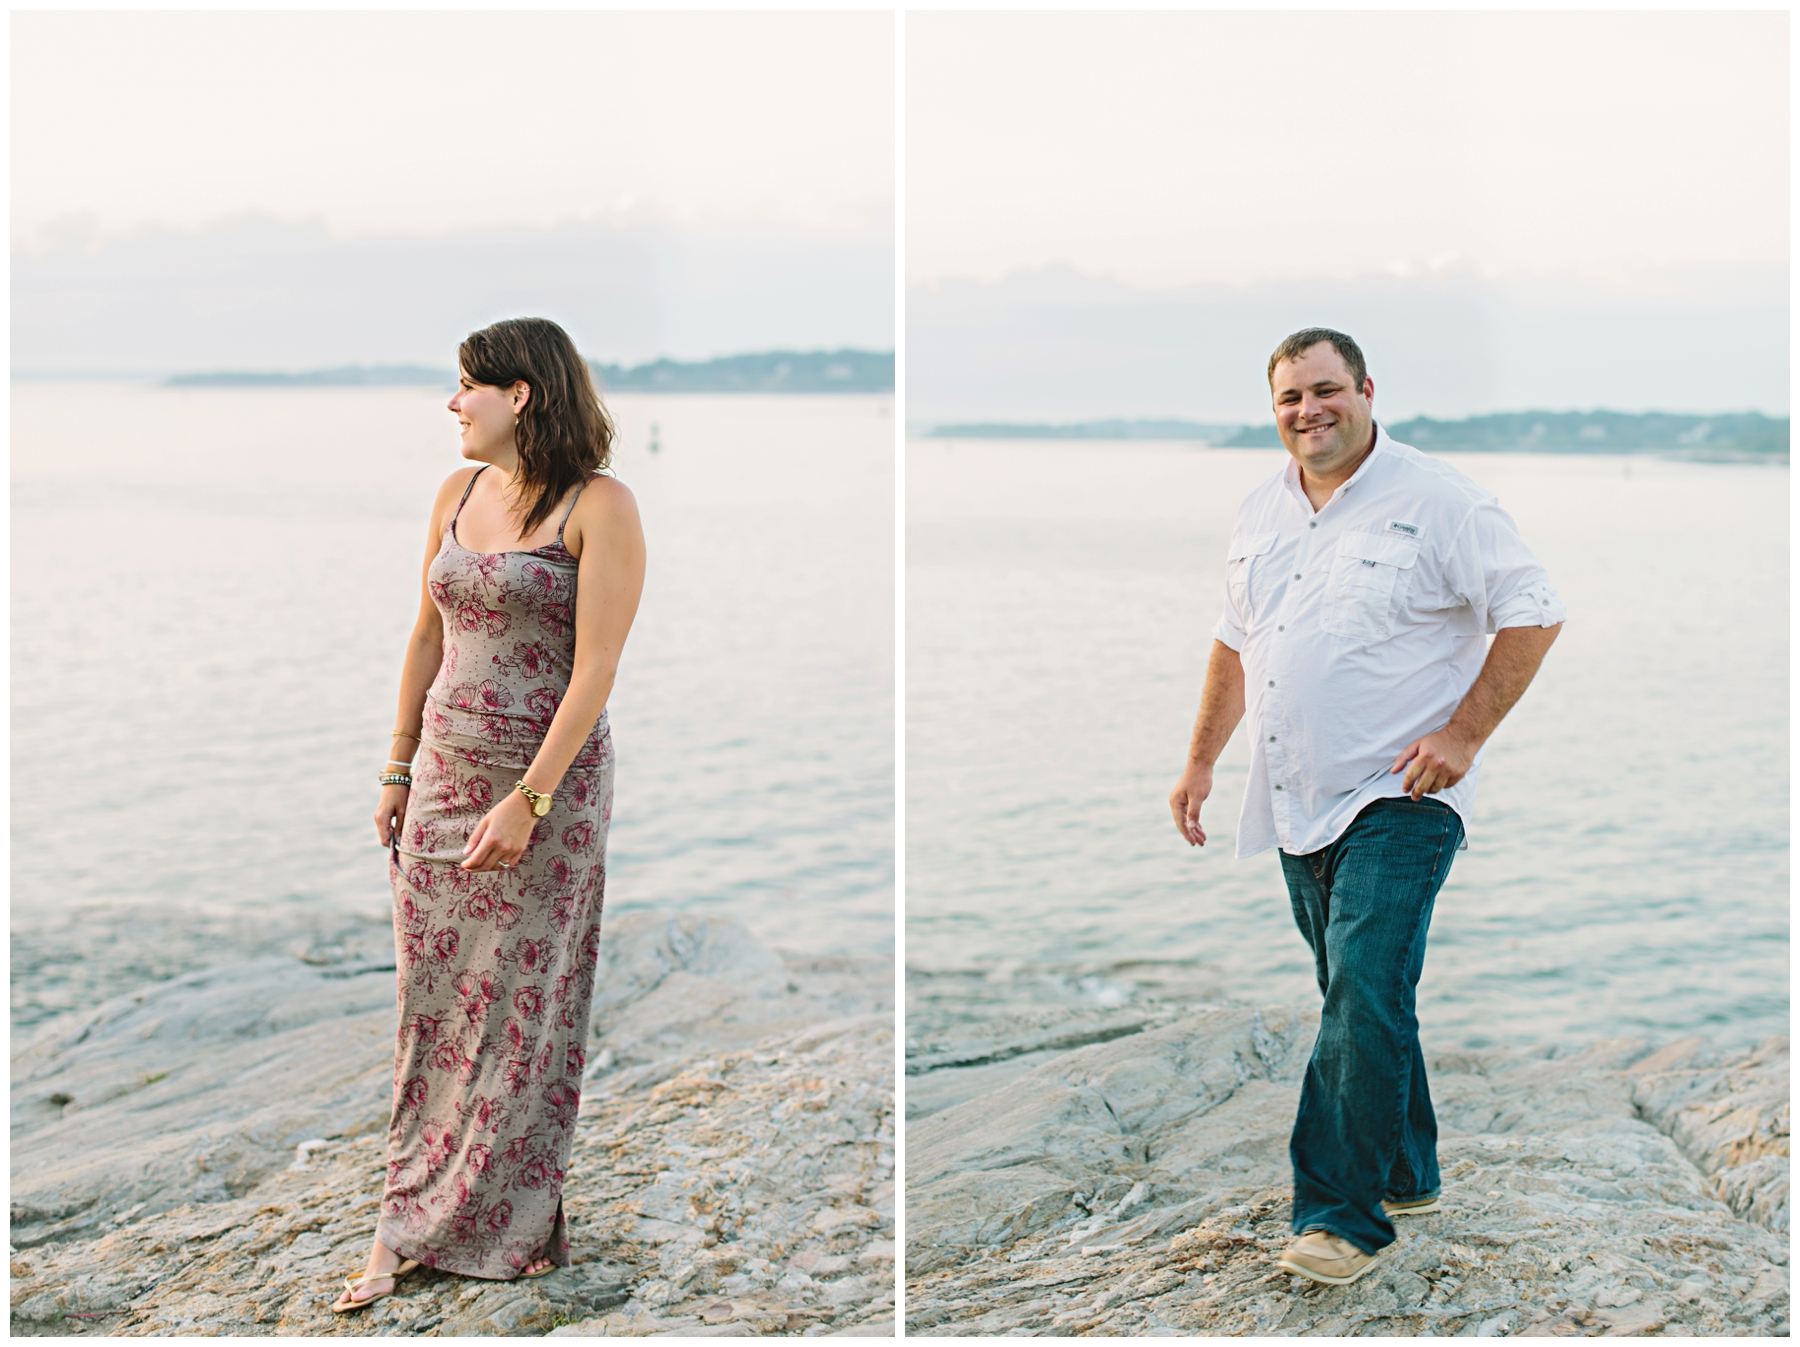 Maine_Photographer_Engagements_FortWilliams_PortlandHeadLight_lighthouse_coastal_seaside-027